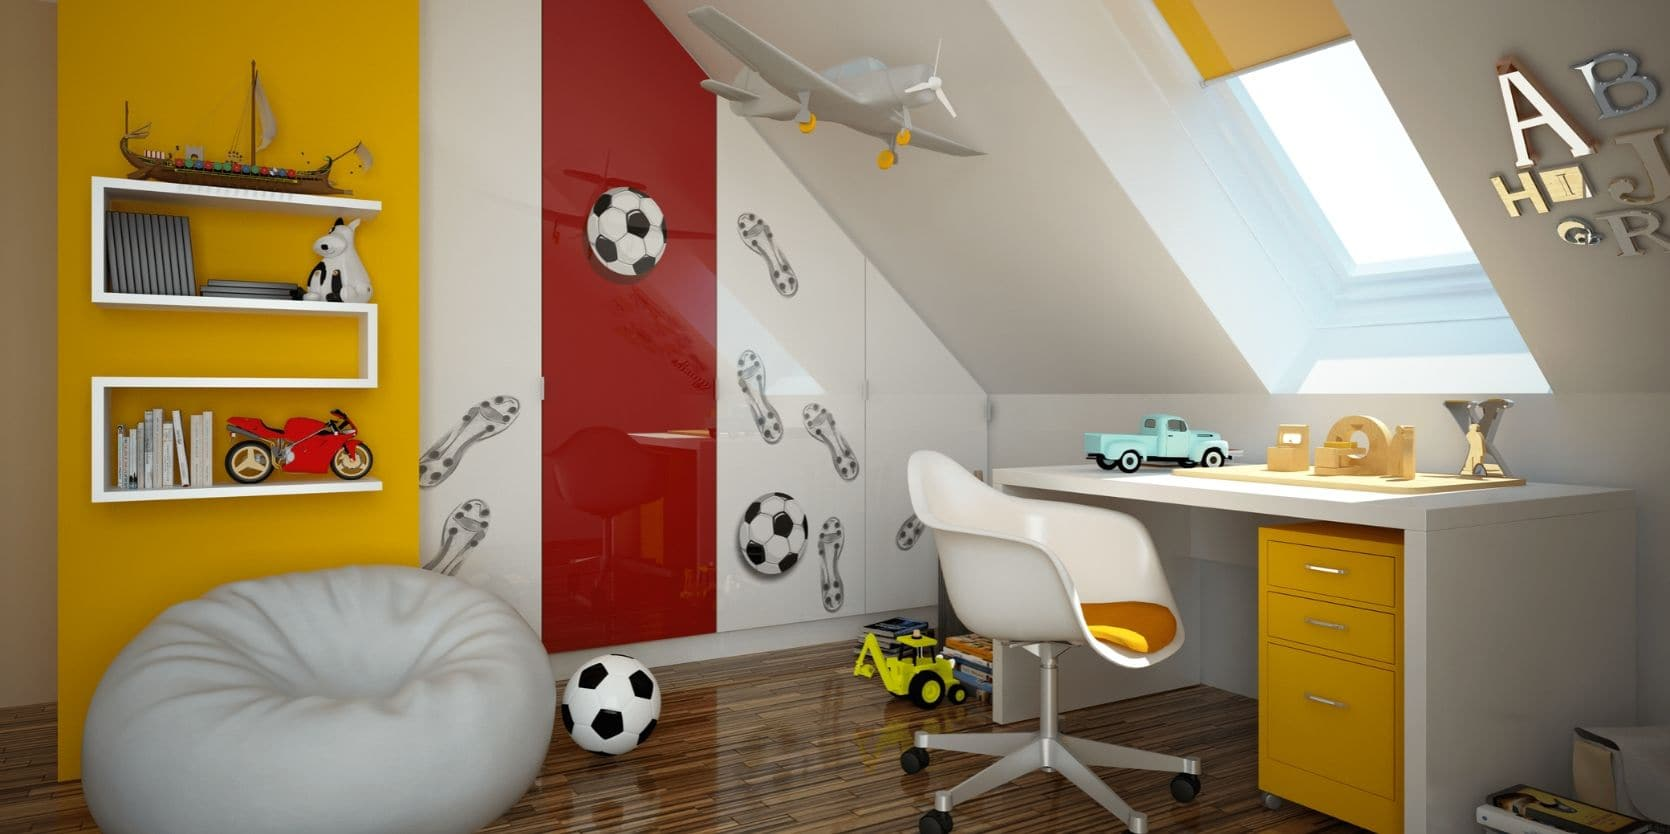 Child's bedroom with bean bag and footballs